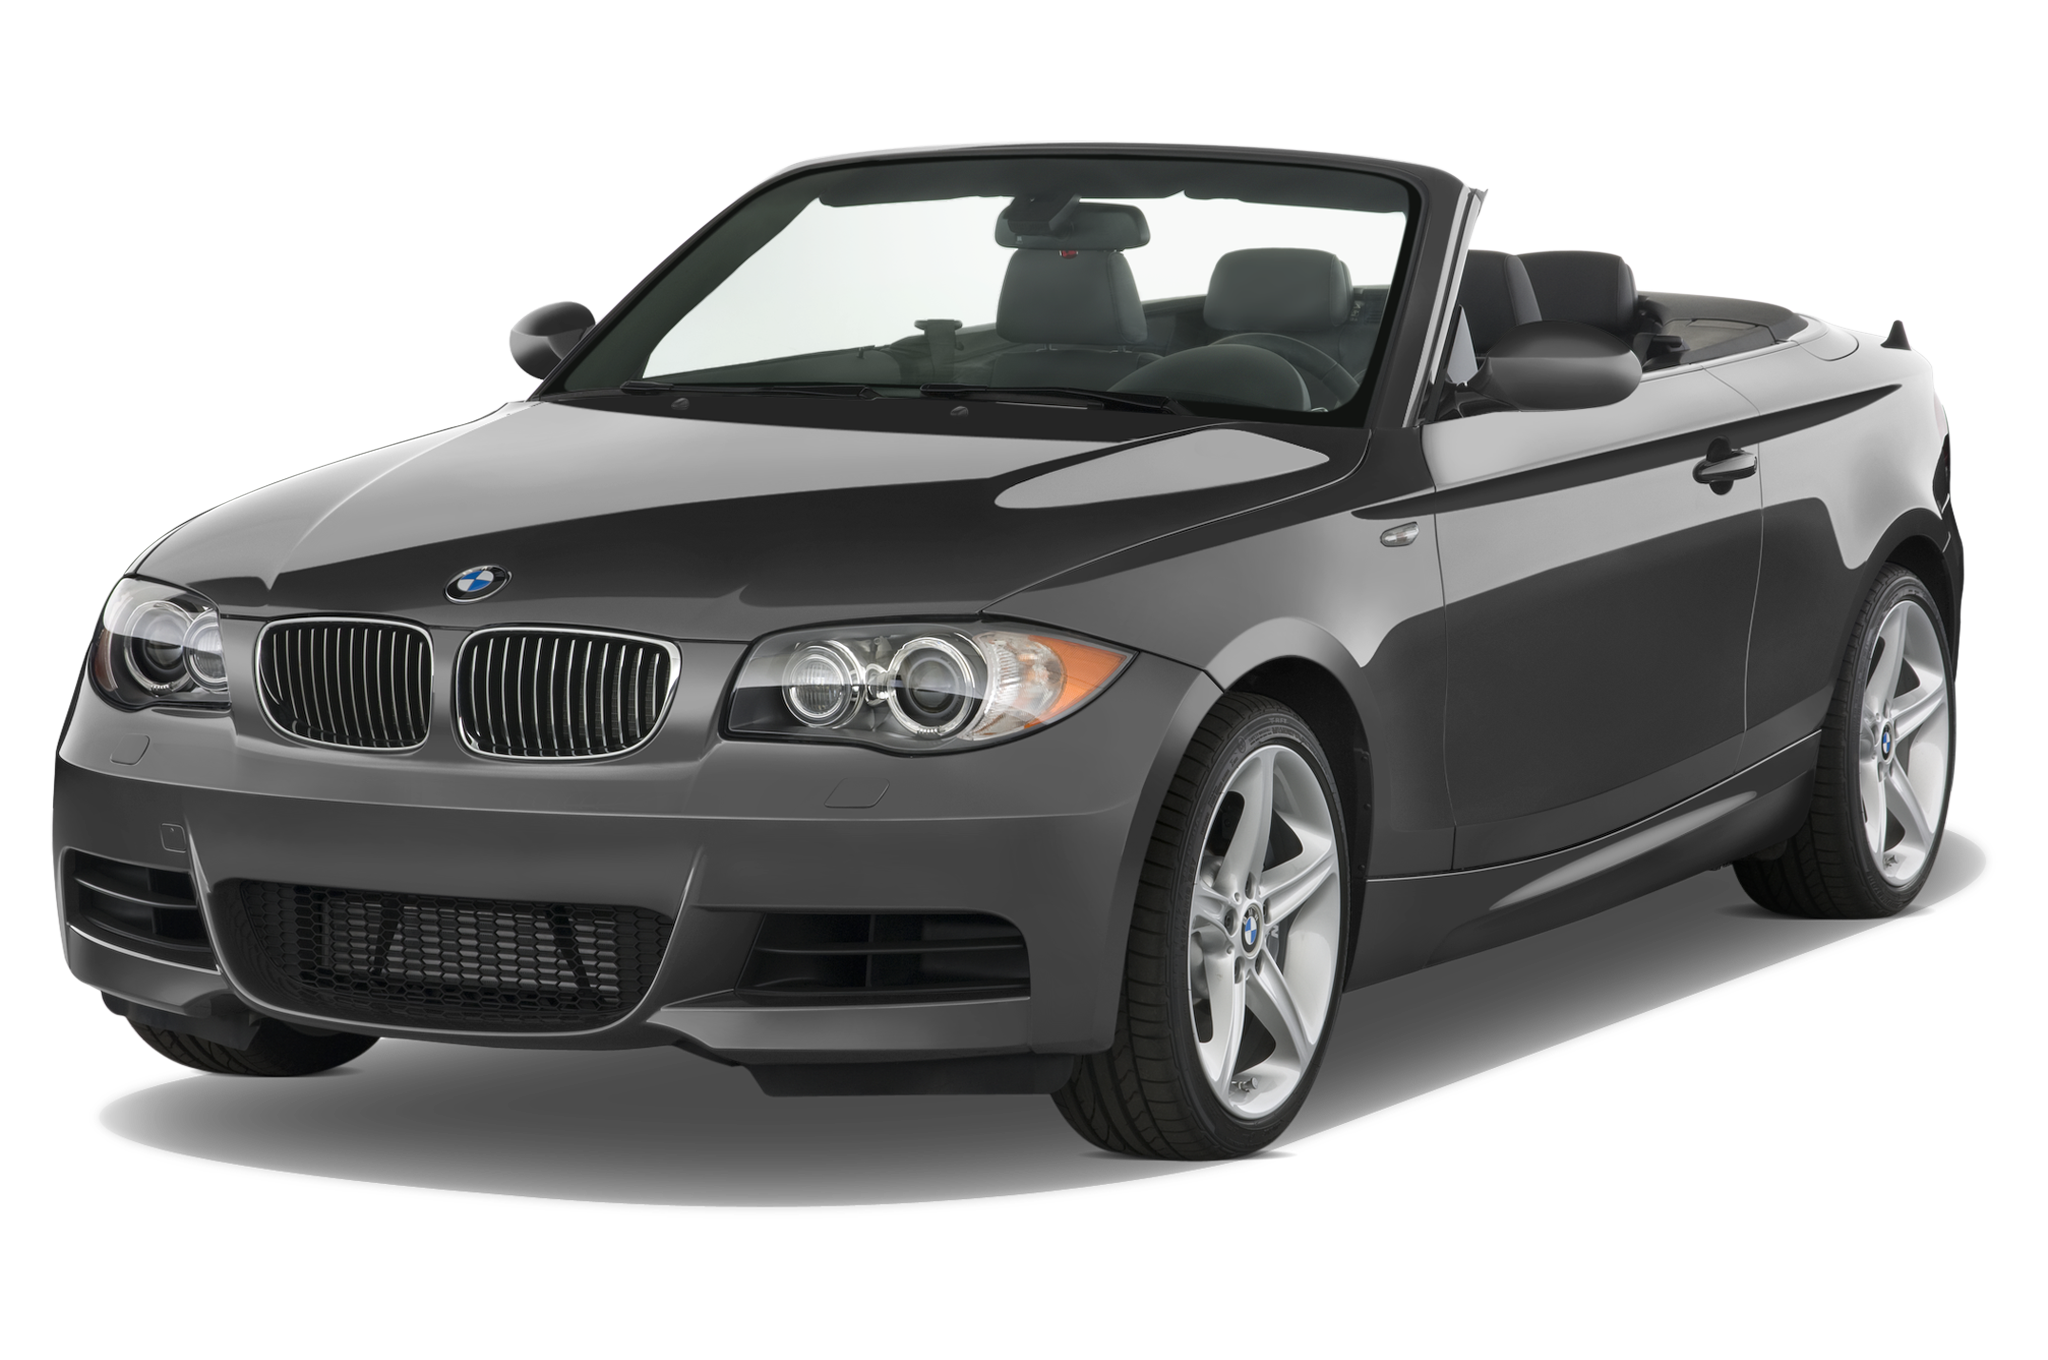 2011 bmw 128i convertible horsepower